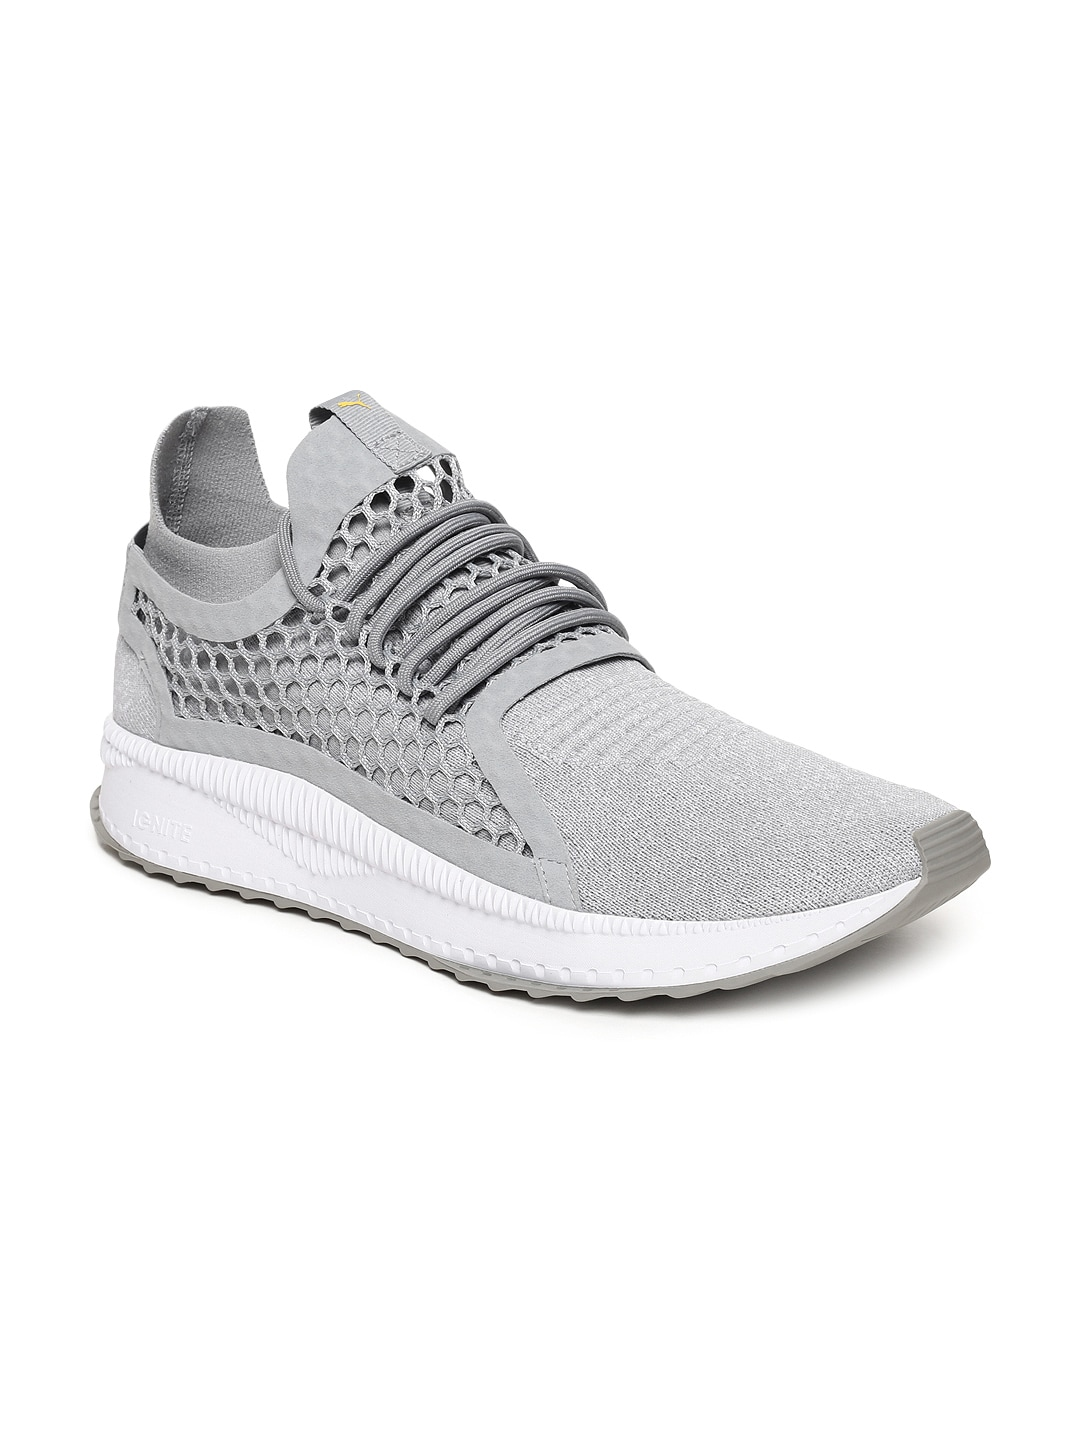 16f51afd783 Puma Shoes - Buy Puma Shoes for Men   Women Online in India